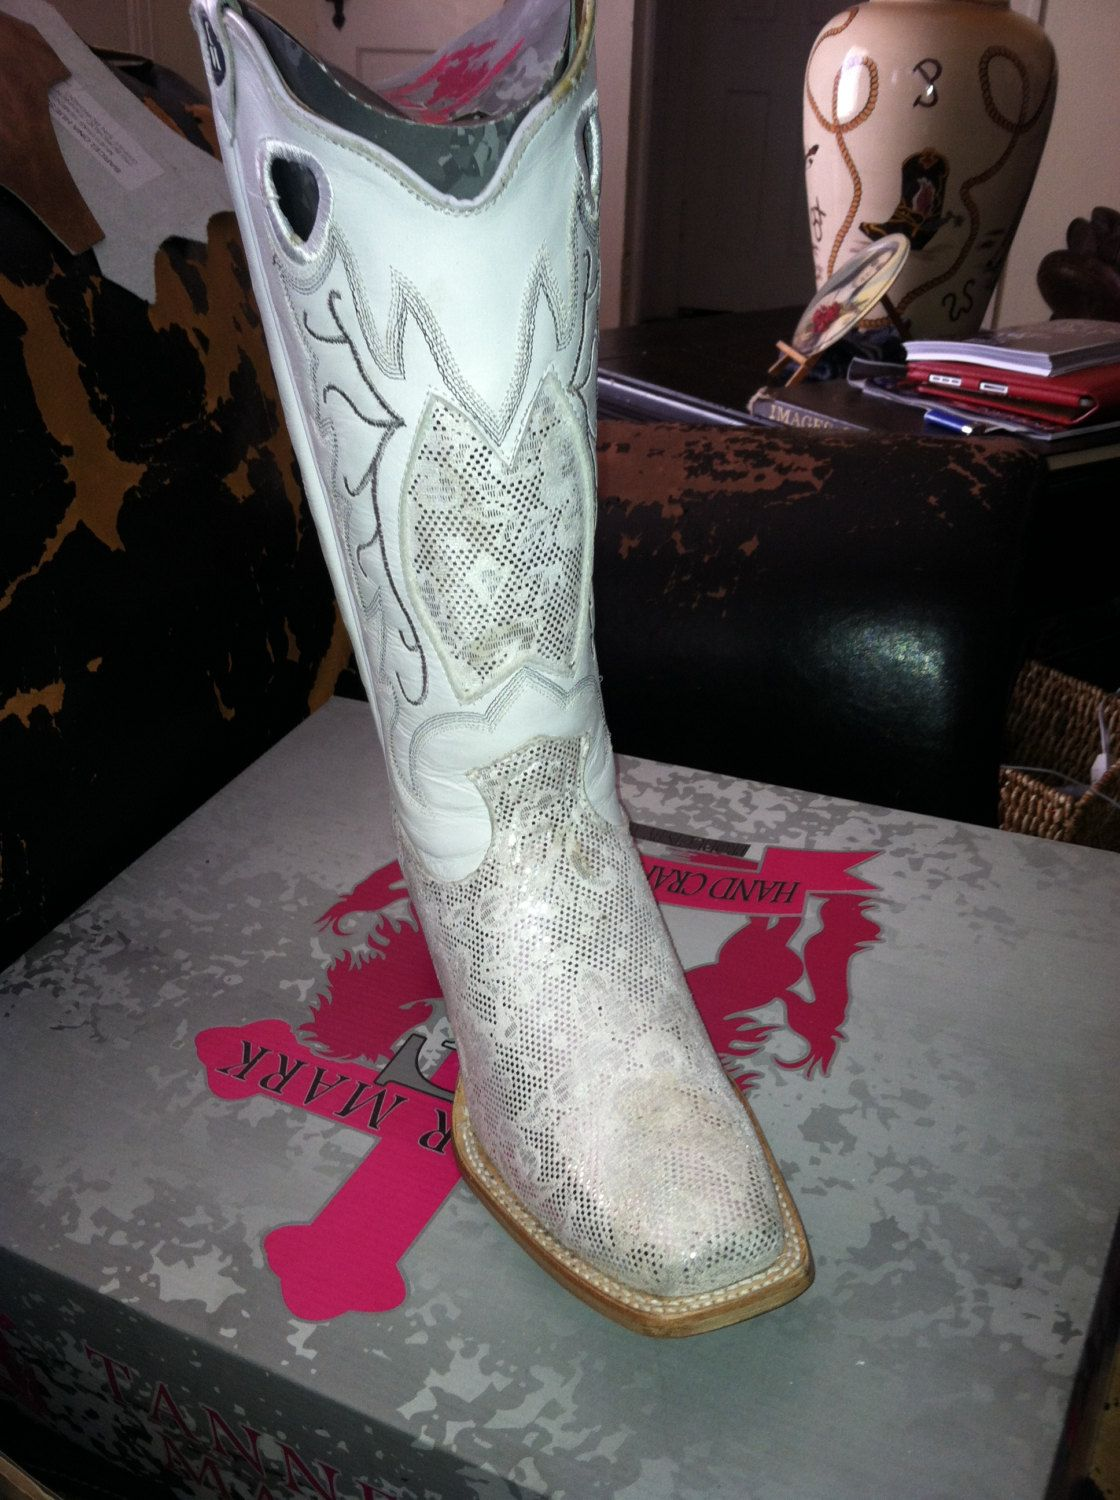 981814aa9d0b9 White Wedding Cowboy Boots for party | Bridal attire | Wedding ...